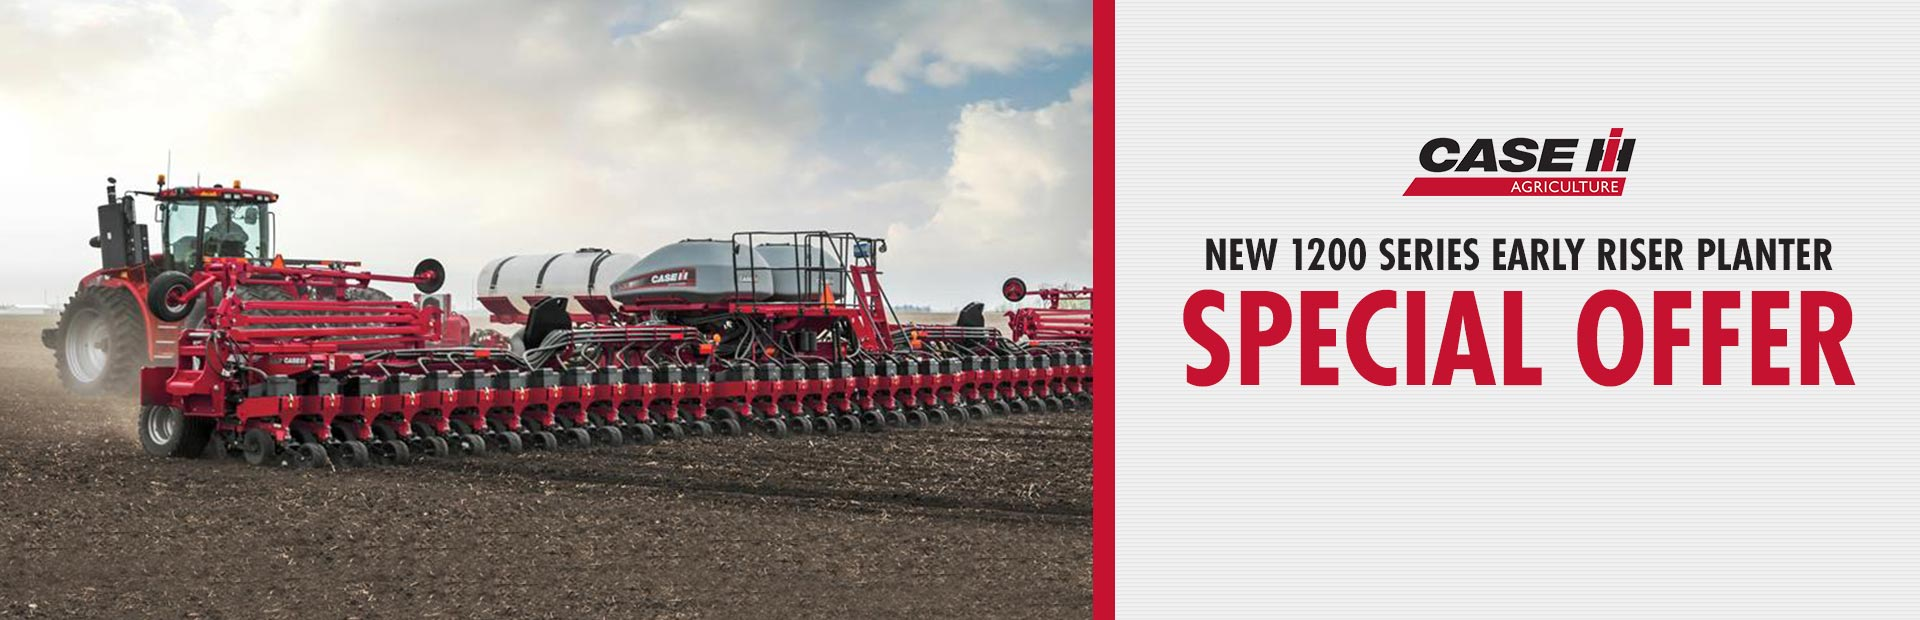 Case Ih New 1200 Series Early Riser Planter Special Offer Jacobi